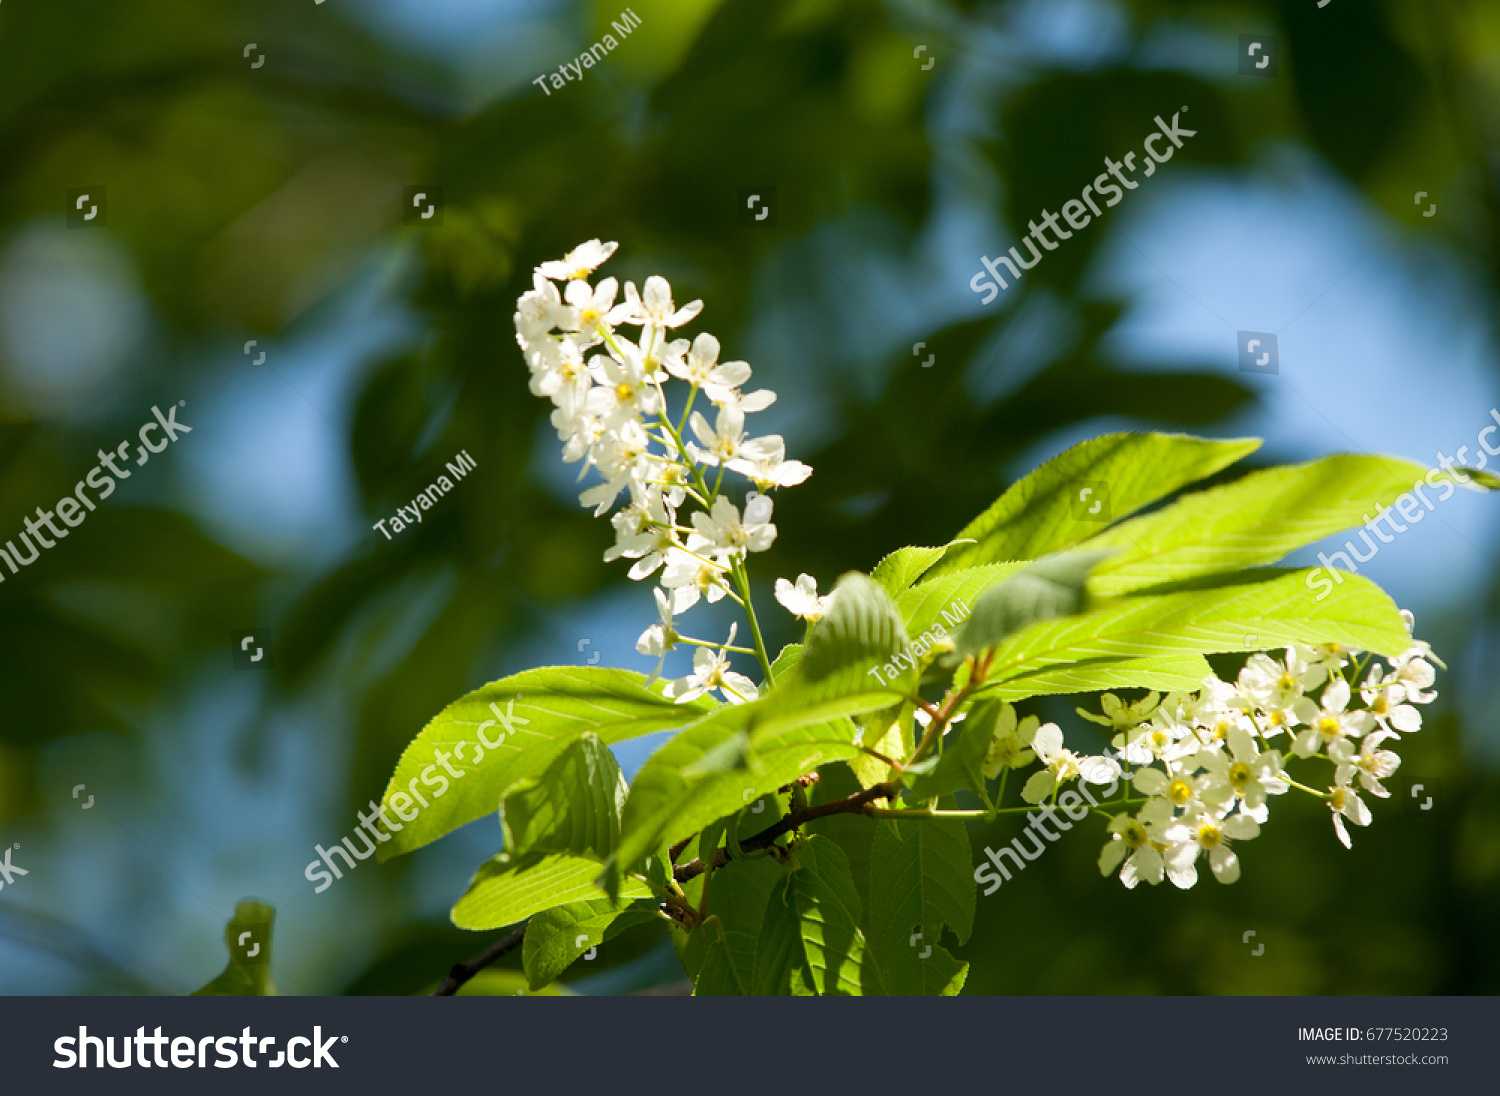 Spring flowers bird cherry tree white stock photo safe to use spring flowers bird cherry a tree with white fragrant flowers collected in a mightylinksfo